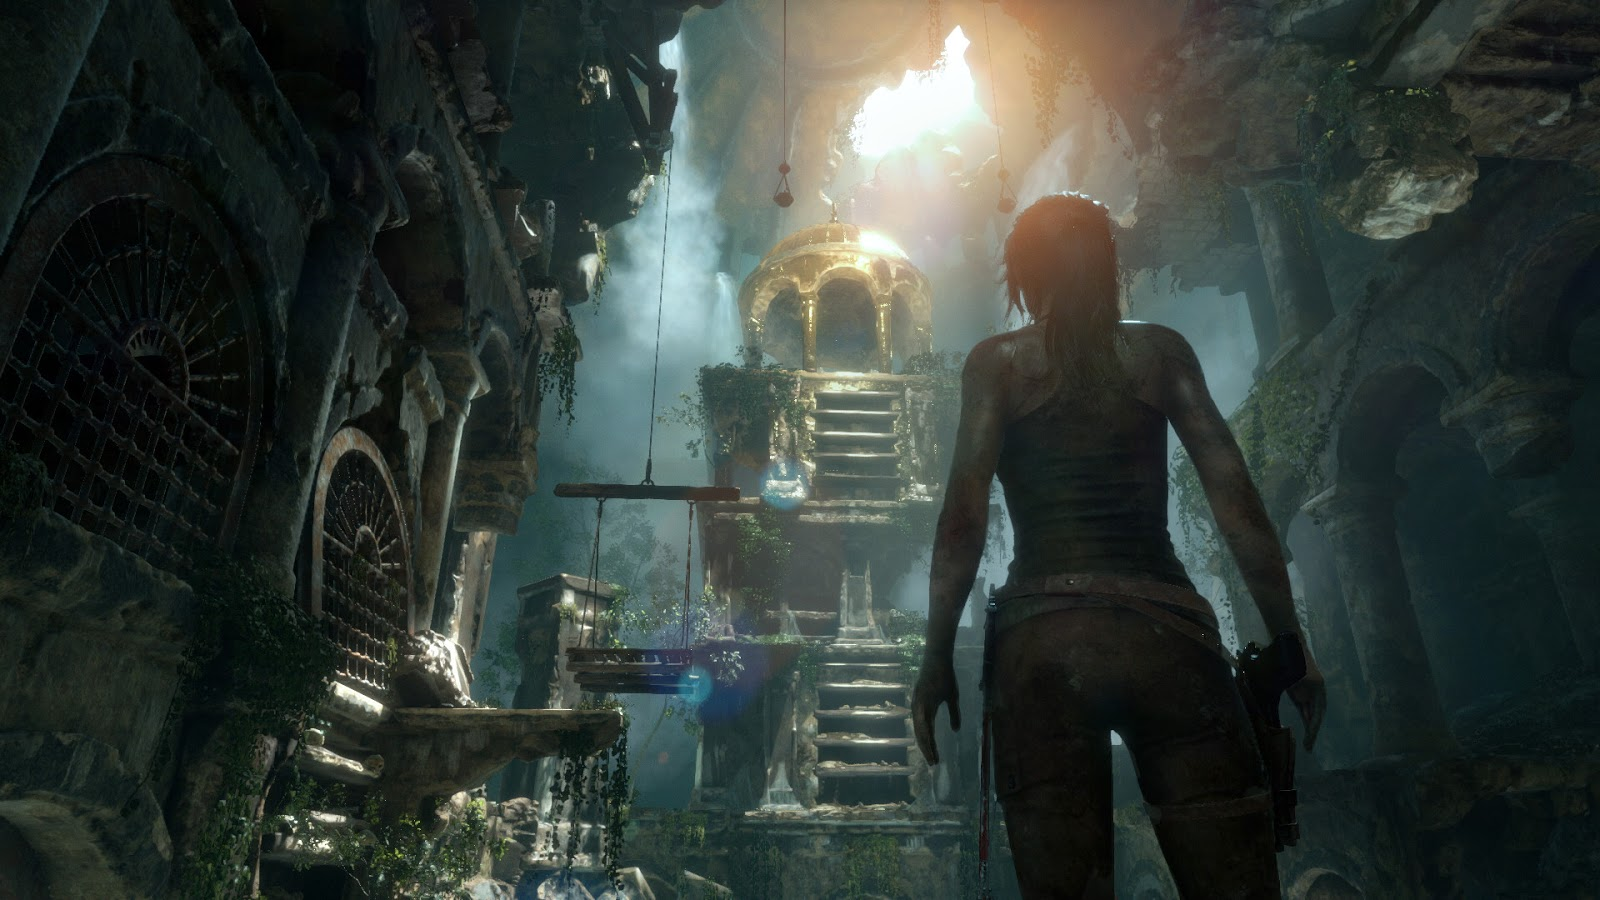 Rise Of The Tomb Raider 20 Years Celebration ESPAÑOL PC Full (CPY) + REPACK 4 DVD5 (JPW) 6